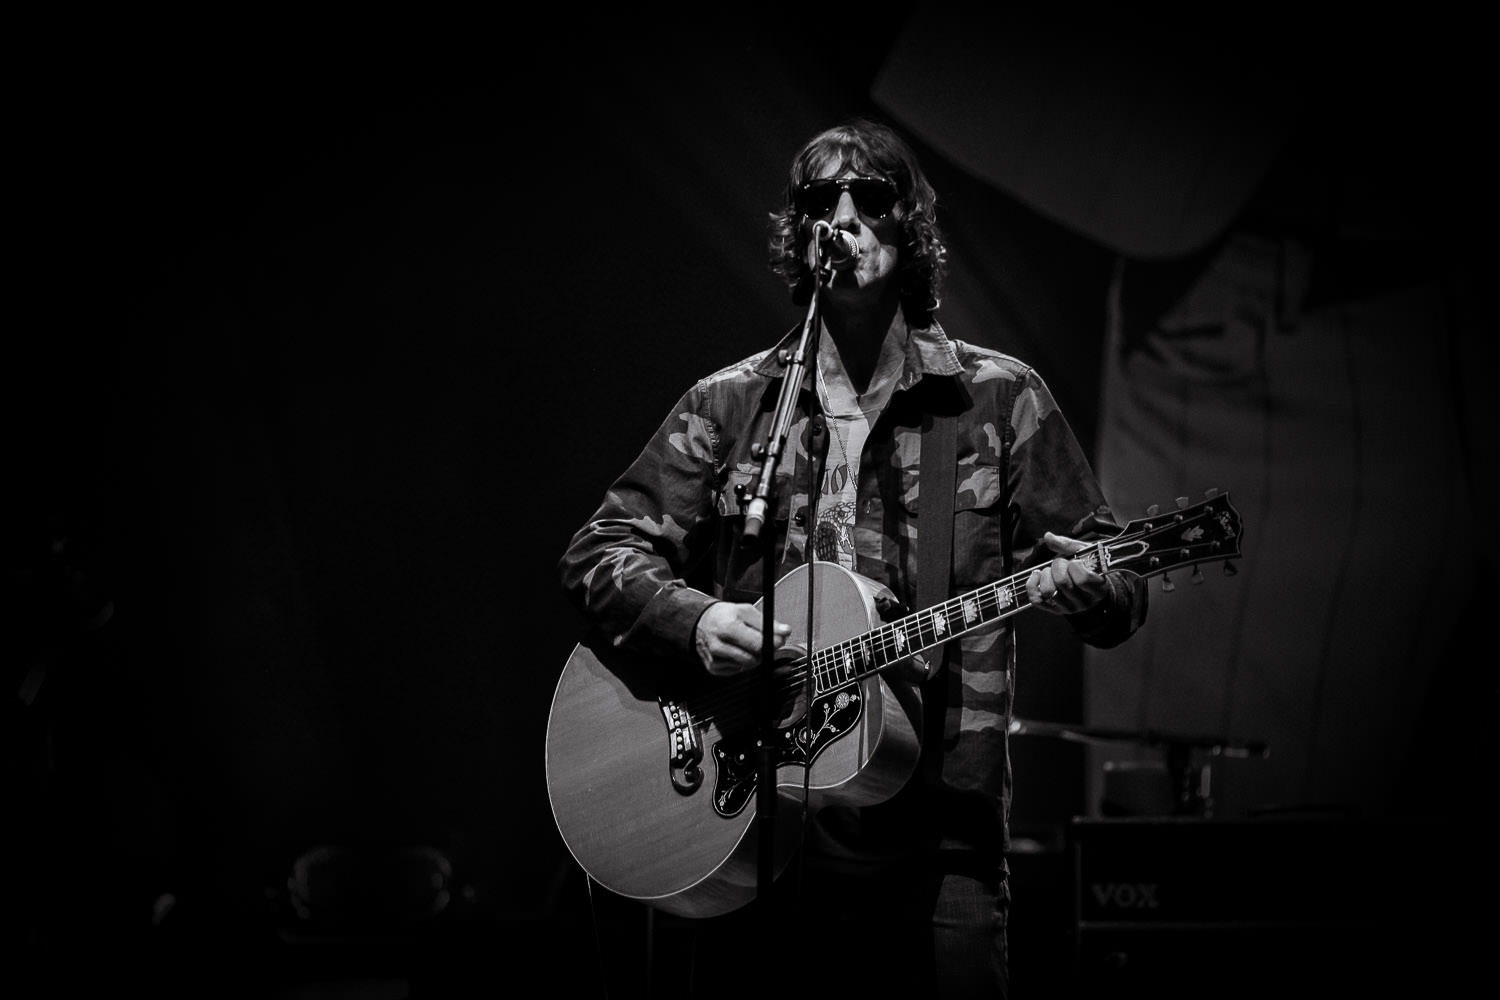 Black and white photo of Richard Ashcroft wearing army jacket singing on stage in Manchester